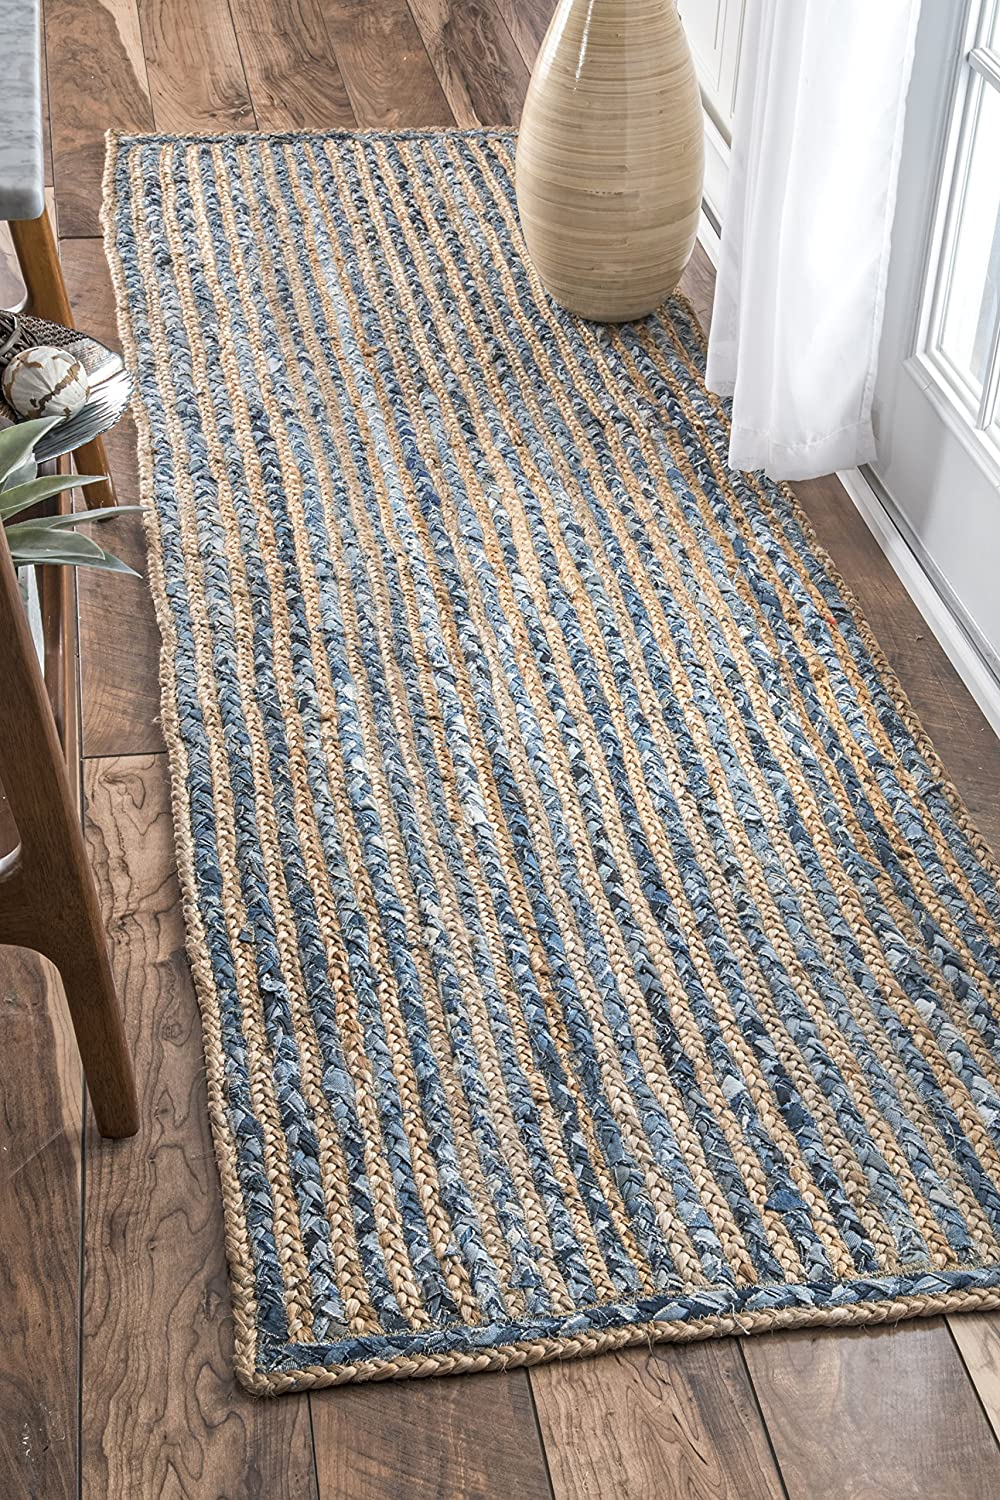 nuLOOM Dara Striped Jute Runner Lowest price challenge Rug x Blue 10' 2' Year-end annual account 6